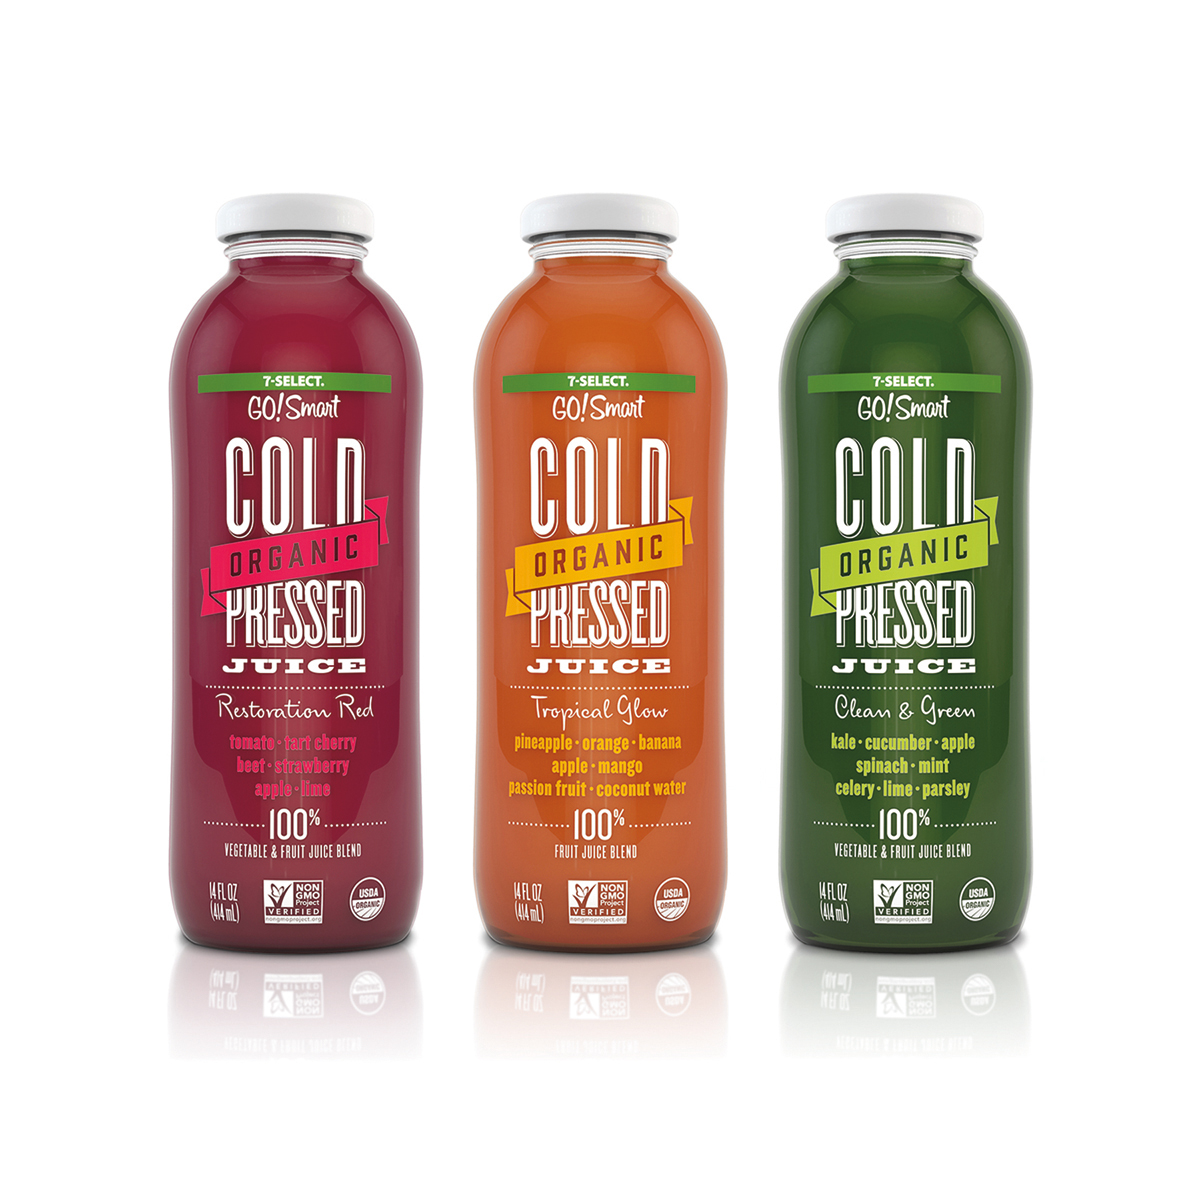 7 Select Go Smart Cold Pressed Juice On Packaging Of The